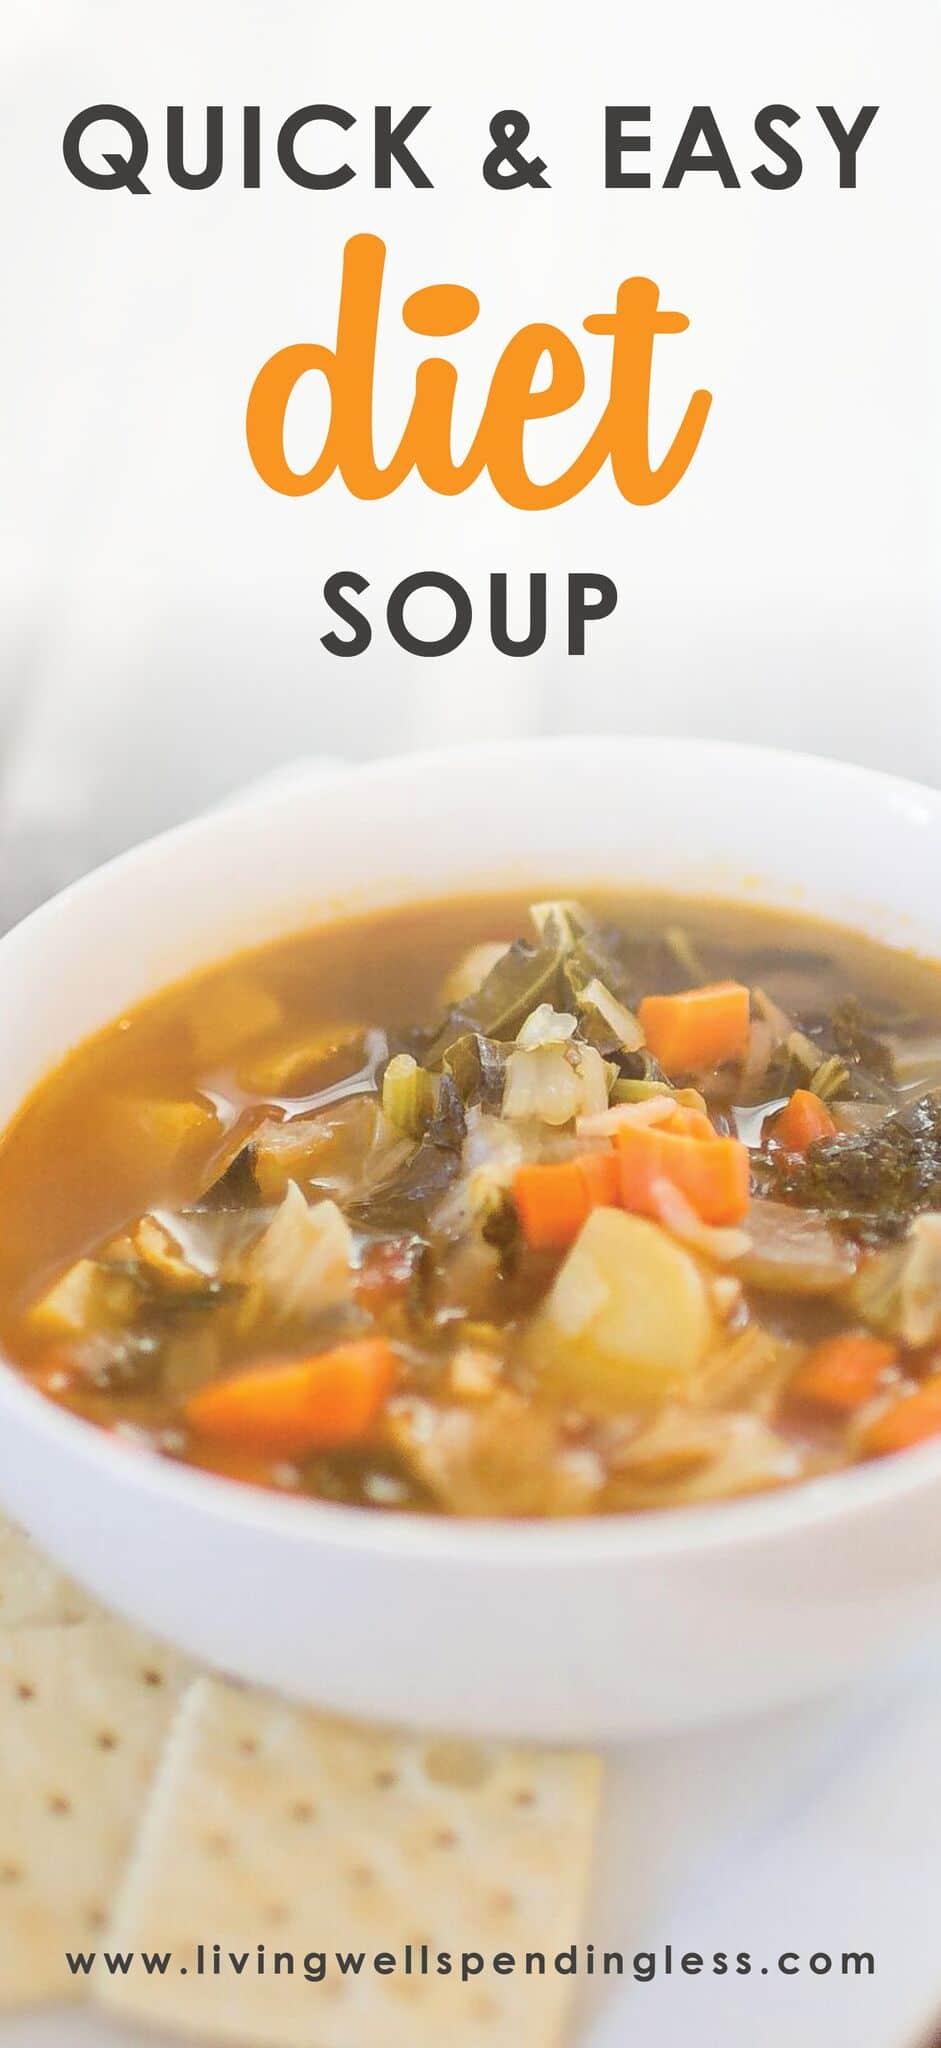 Quick and easy diet soup healthy recipe for weight loss for Winter soup recipes easy